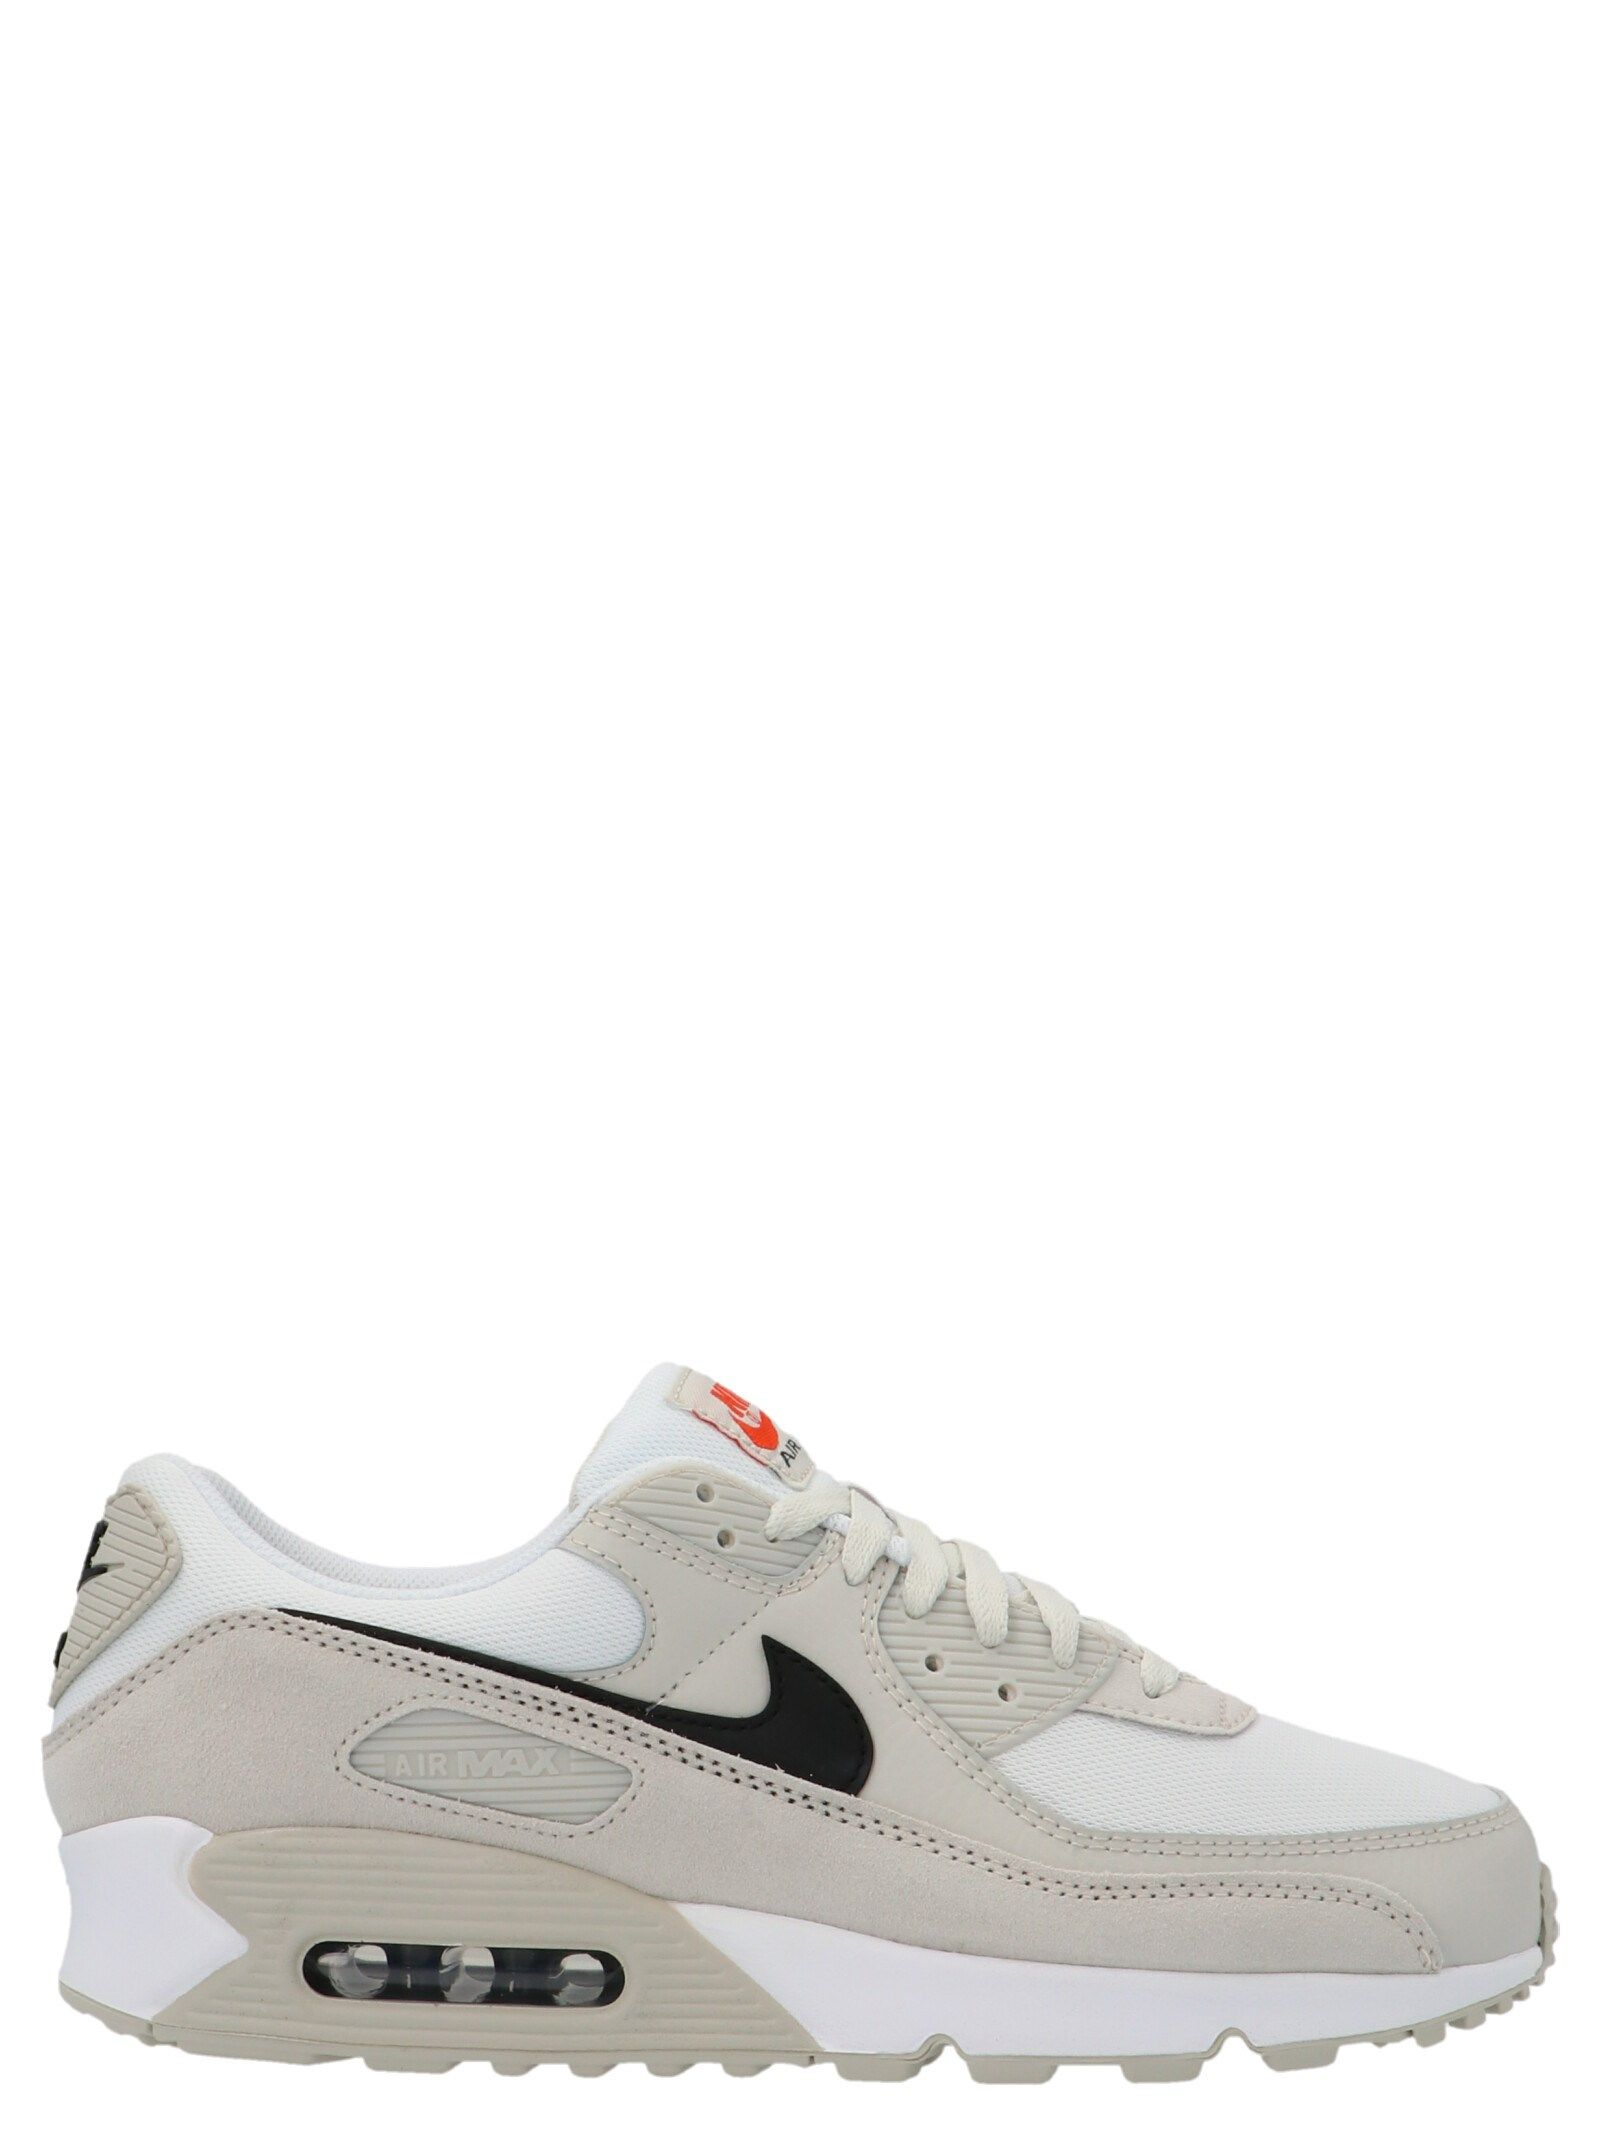 Nike NIKE MEN'S MULTICOLOR OTHER MATERIALS SNEAKERS